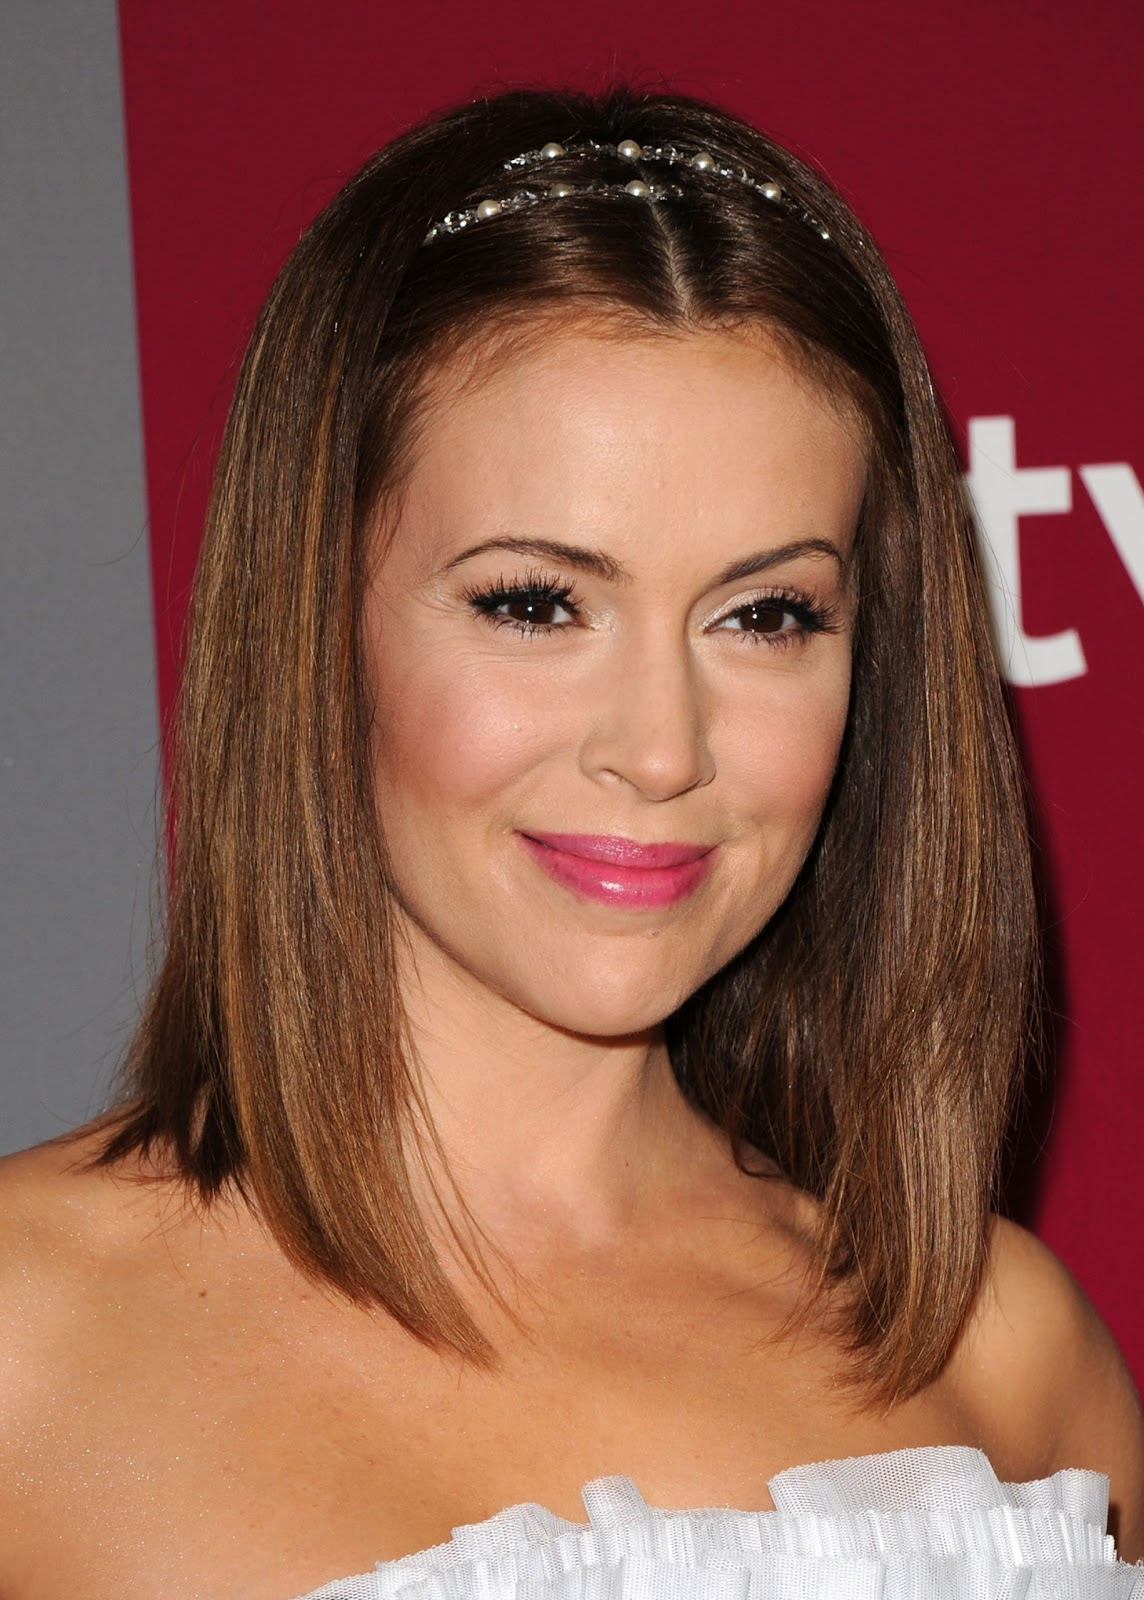 Marvelous Celebrity Alyssa Milano Latest Hairstyle Pictures Prom Hairstyles Hairstyle Inspiration Daily Dogsangcom